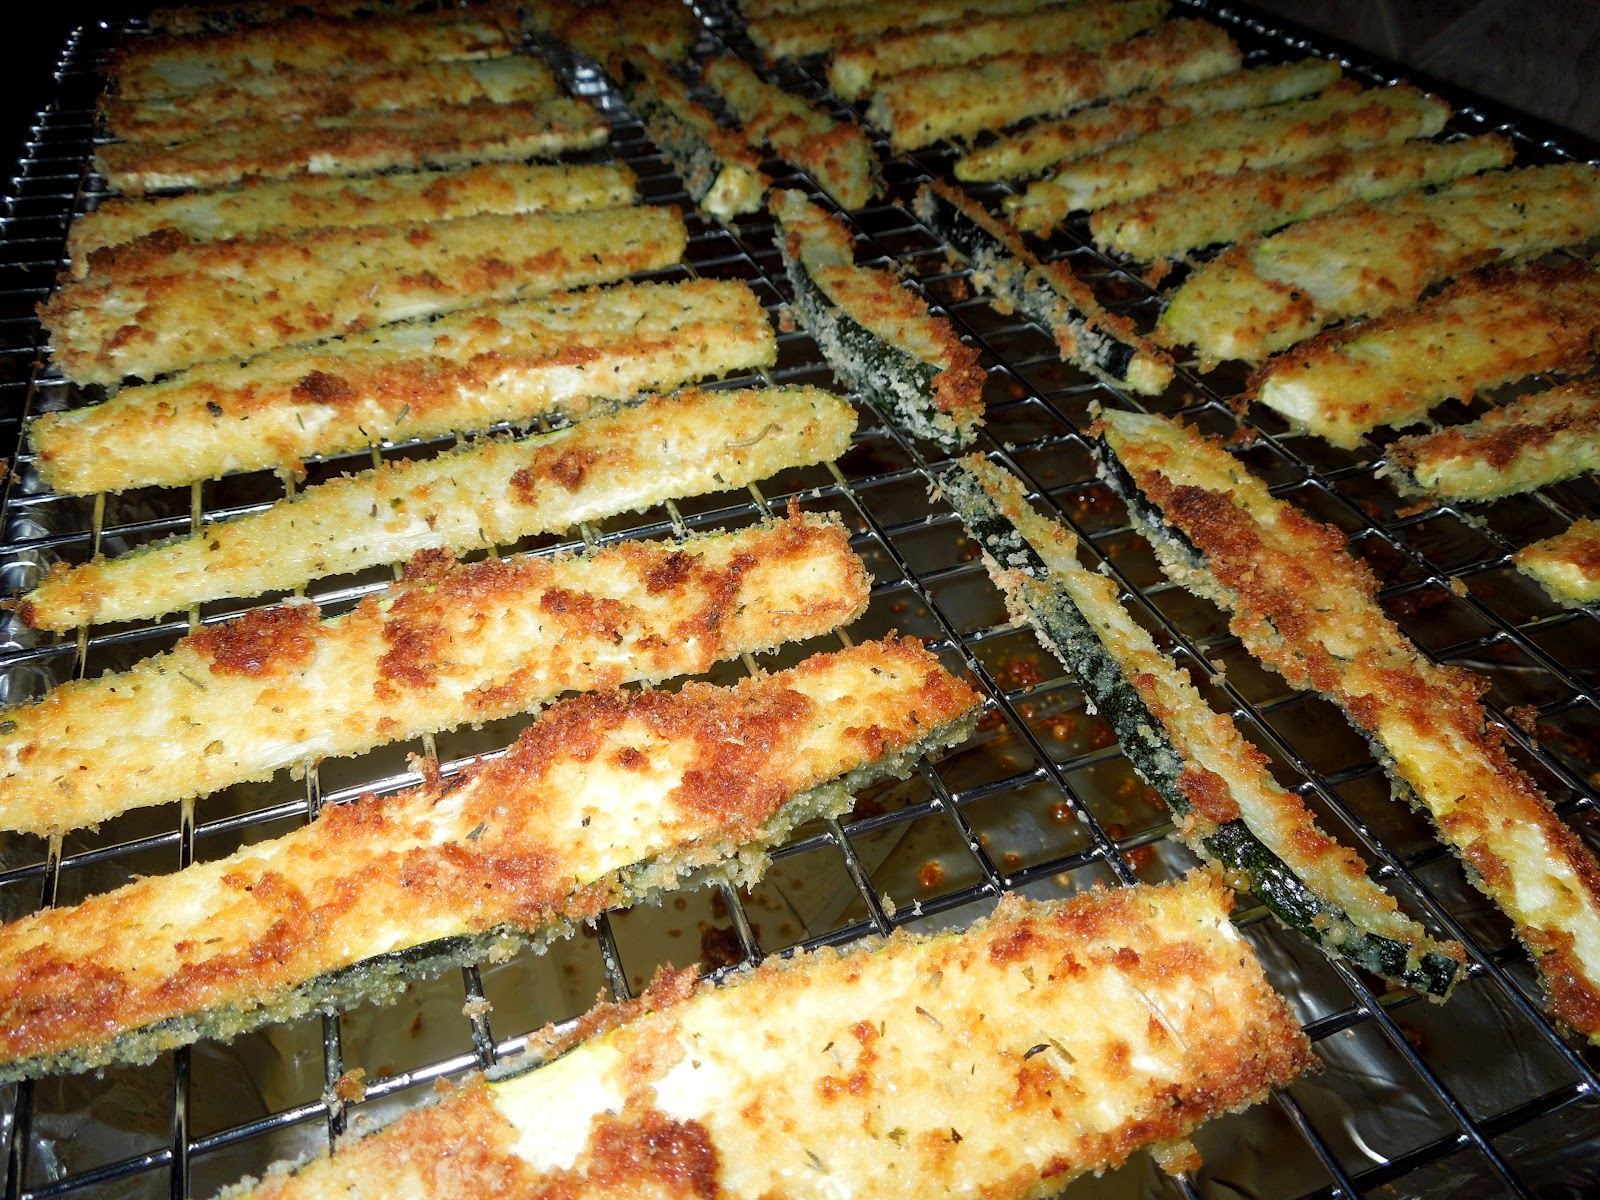 zucchini fries oven baked zucchini fries recipe yummly oven baked ...